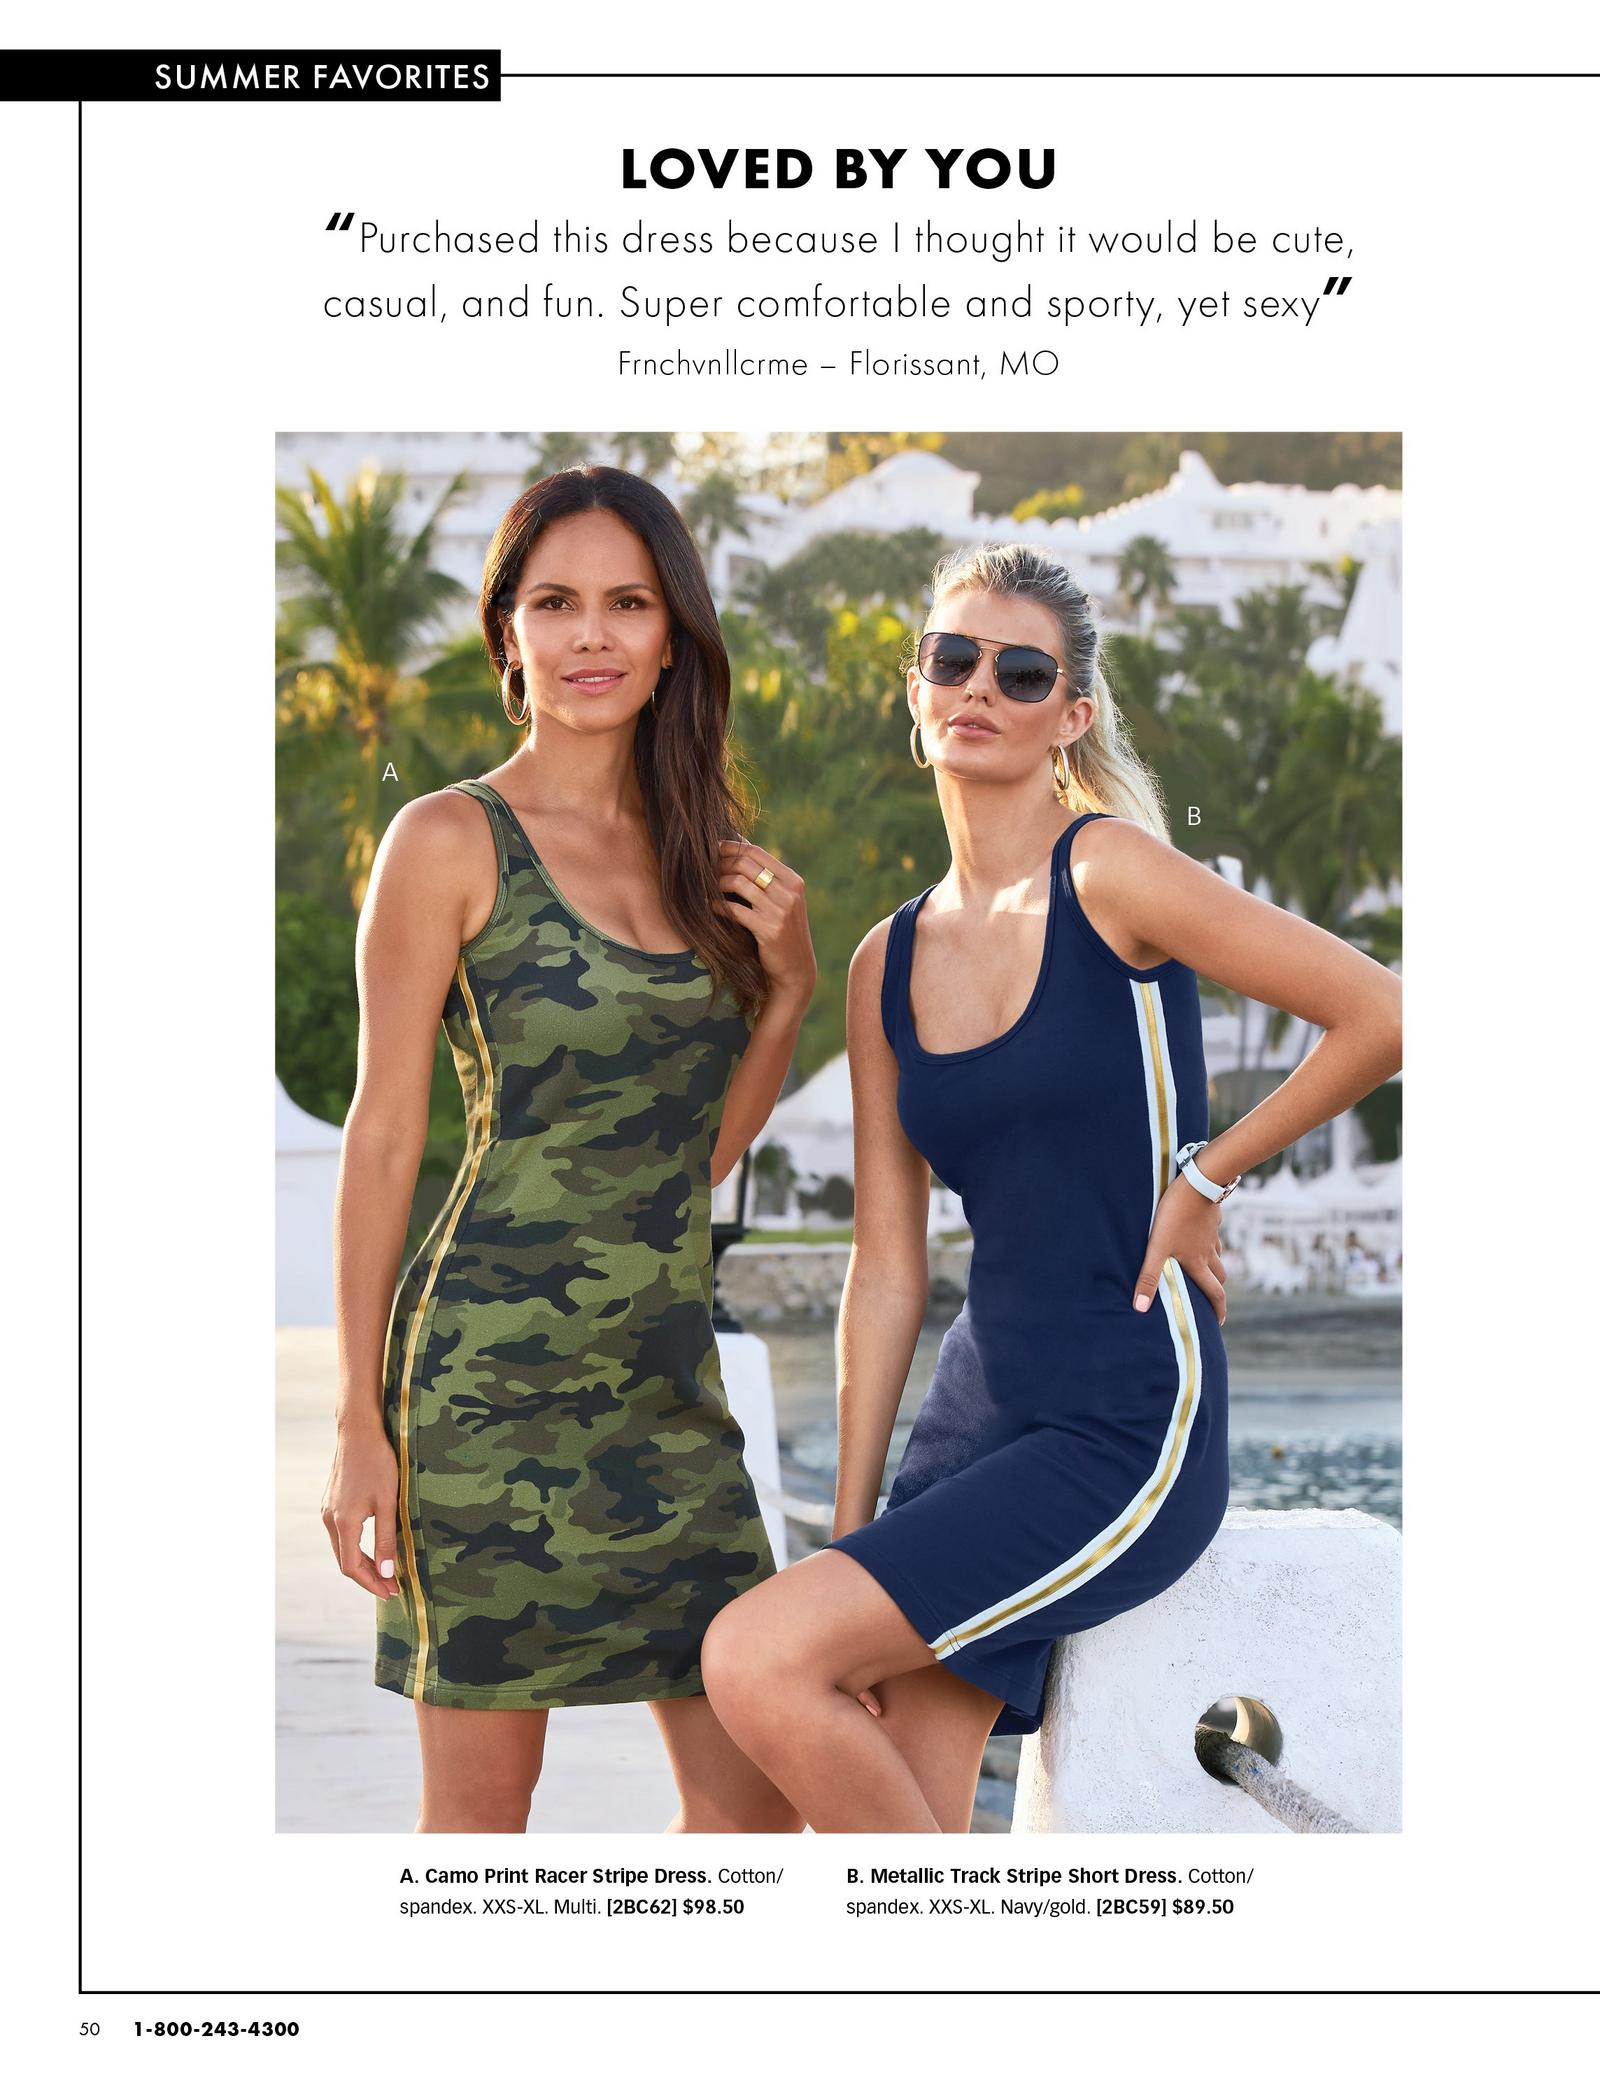 left model wearing a sleeveless camo sports dress with gold racer stripes. right model wearing a navy sleeveless sport dress with white and gold racer stripes and sunglasses.